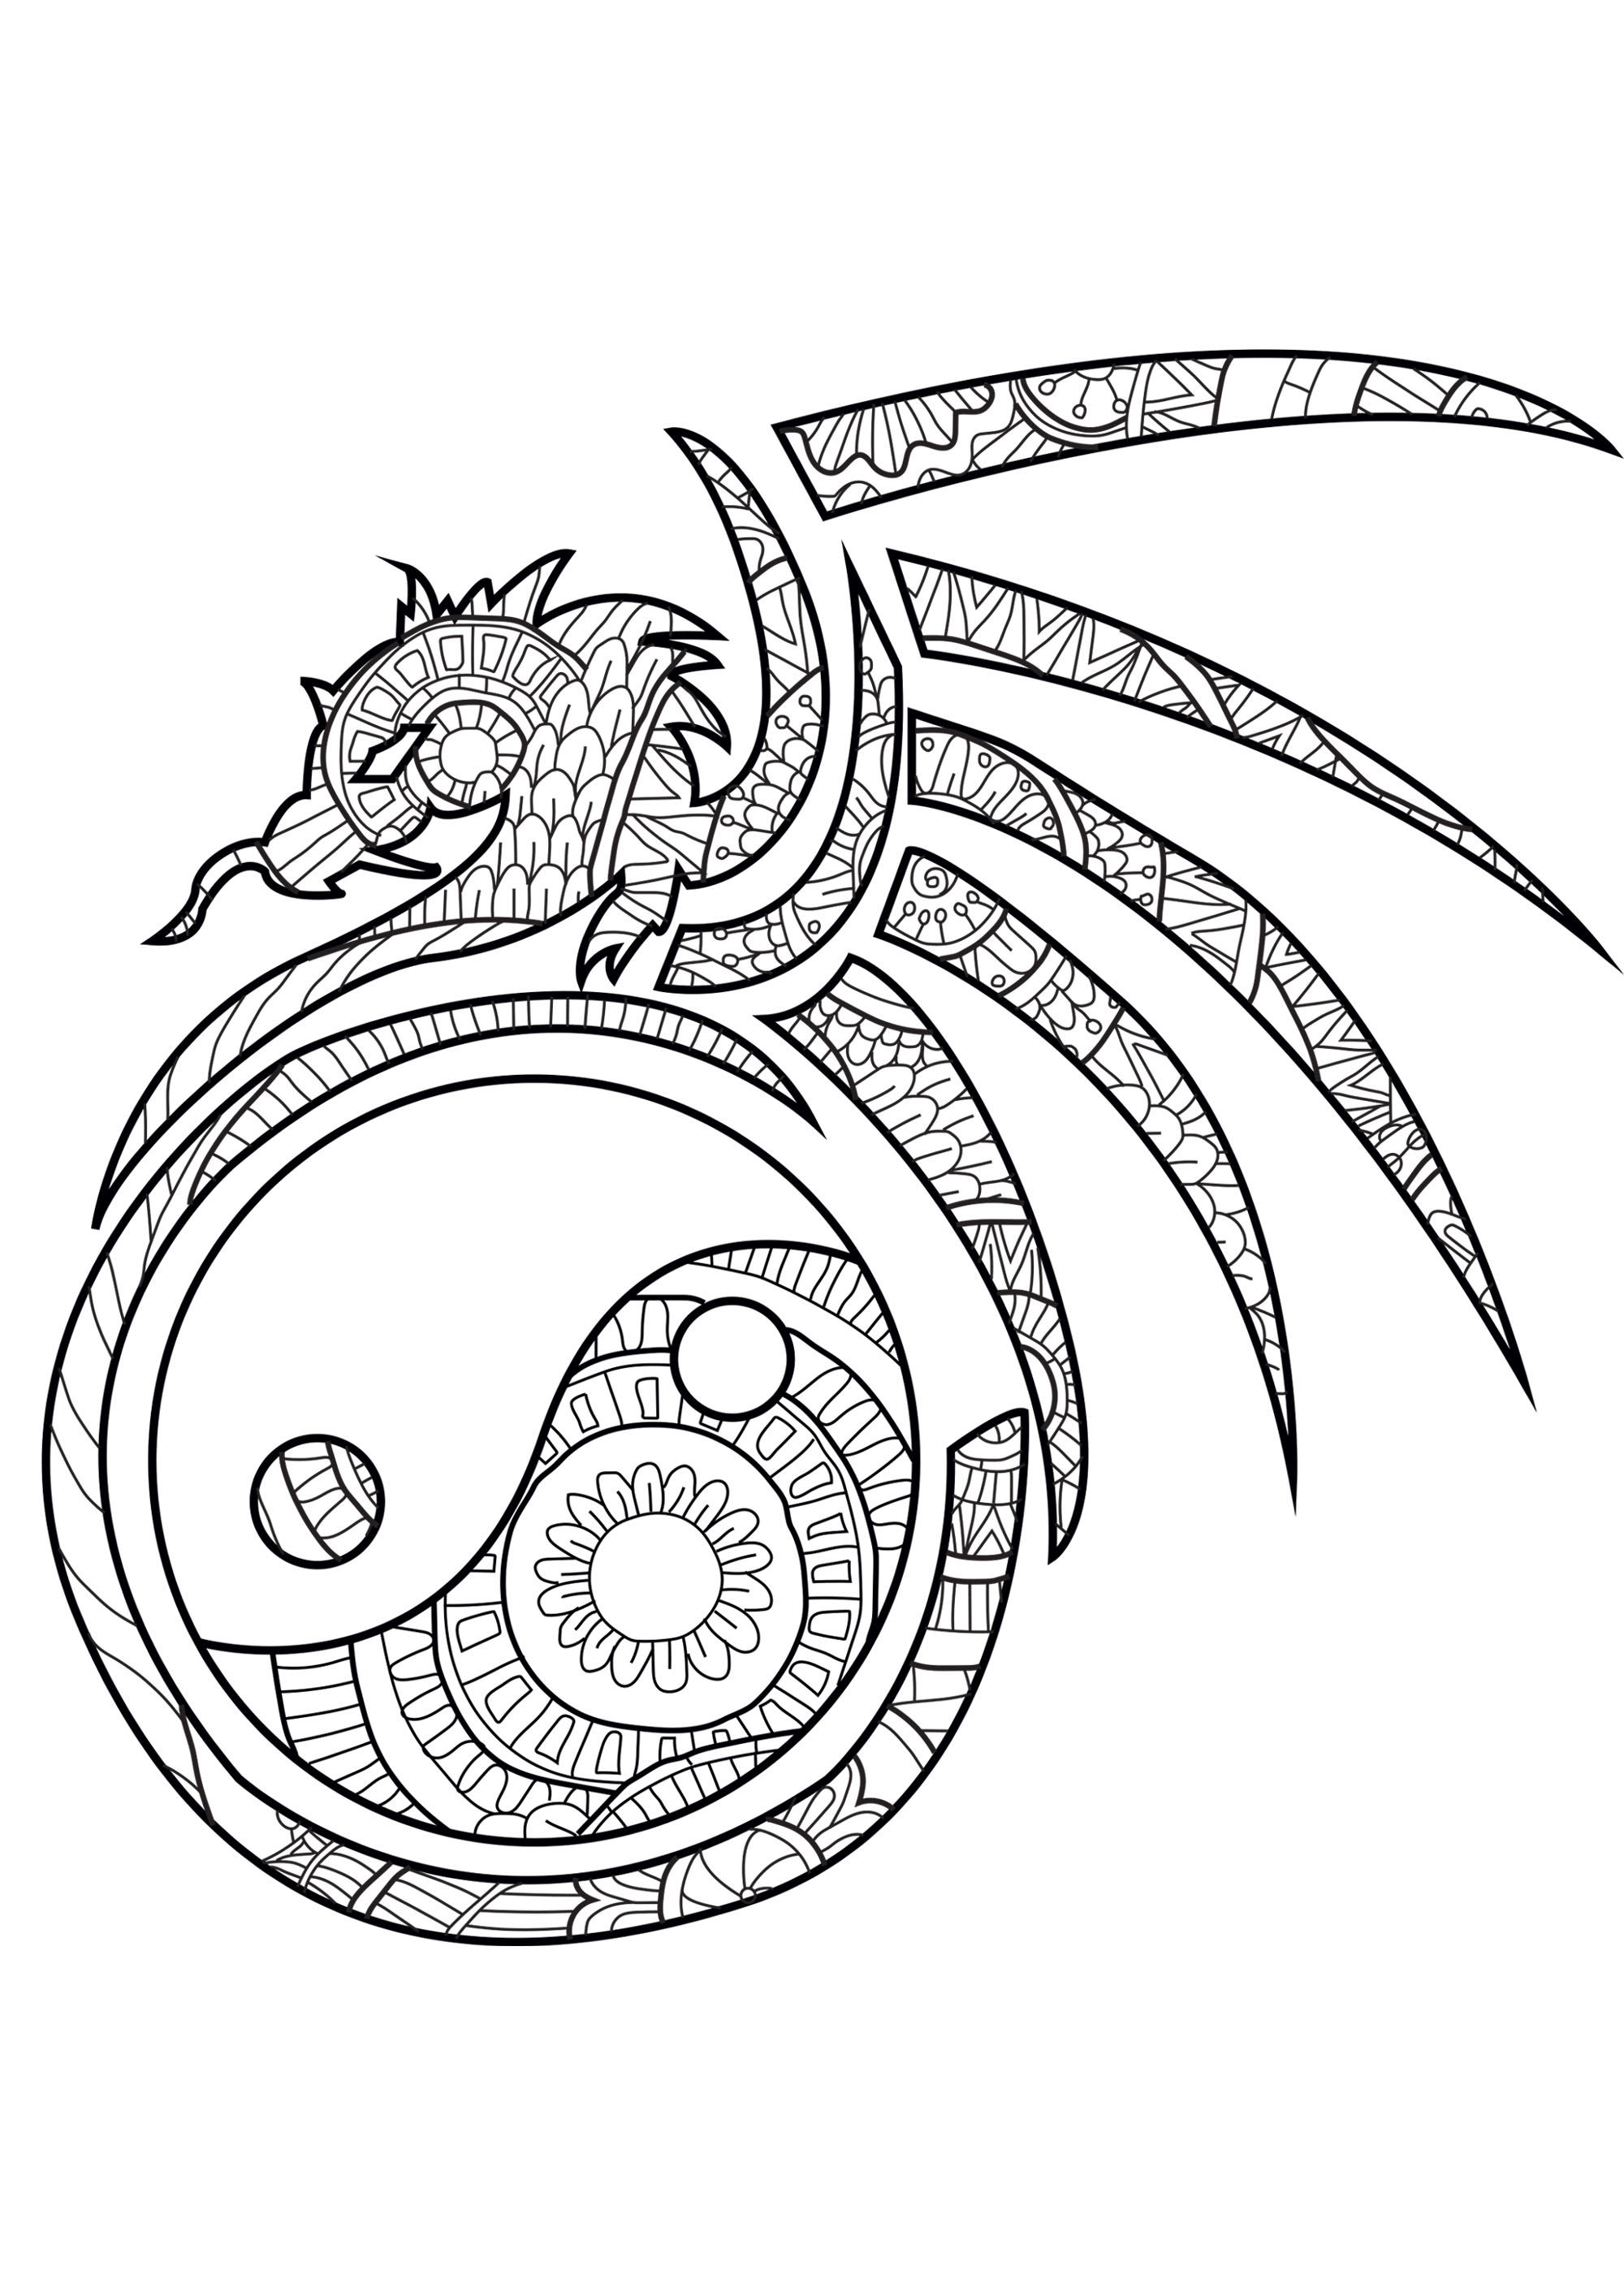 Dragon Coloring Pages For Adults The Spiritual Dragon Dragons Adult Coloring  Pages - birijus.com